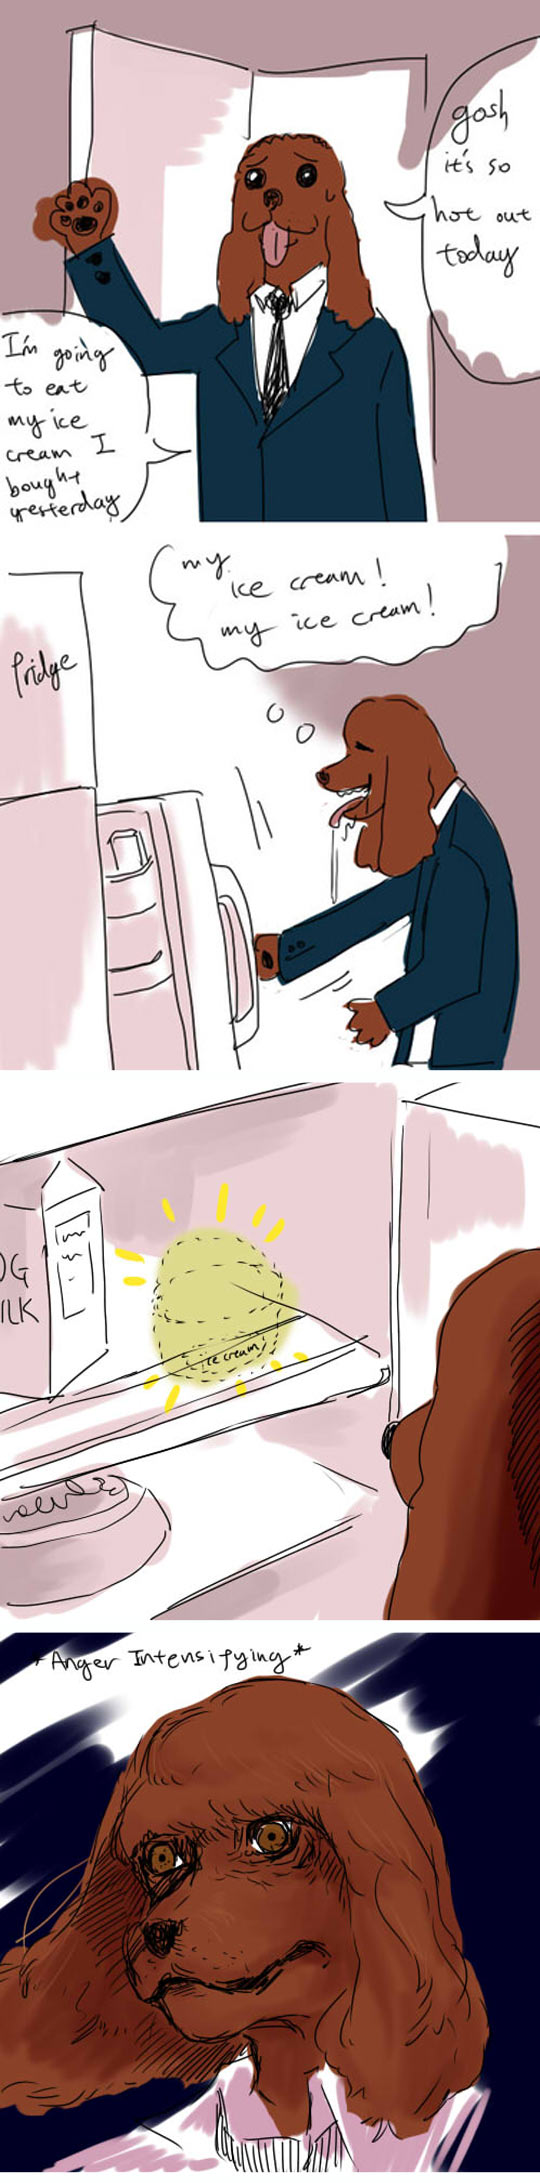 funny-dog-office-fridge-ice-cream-mad-comic